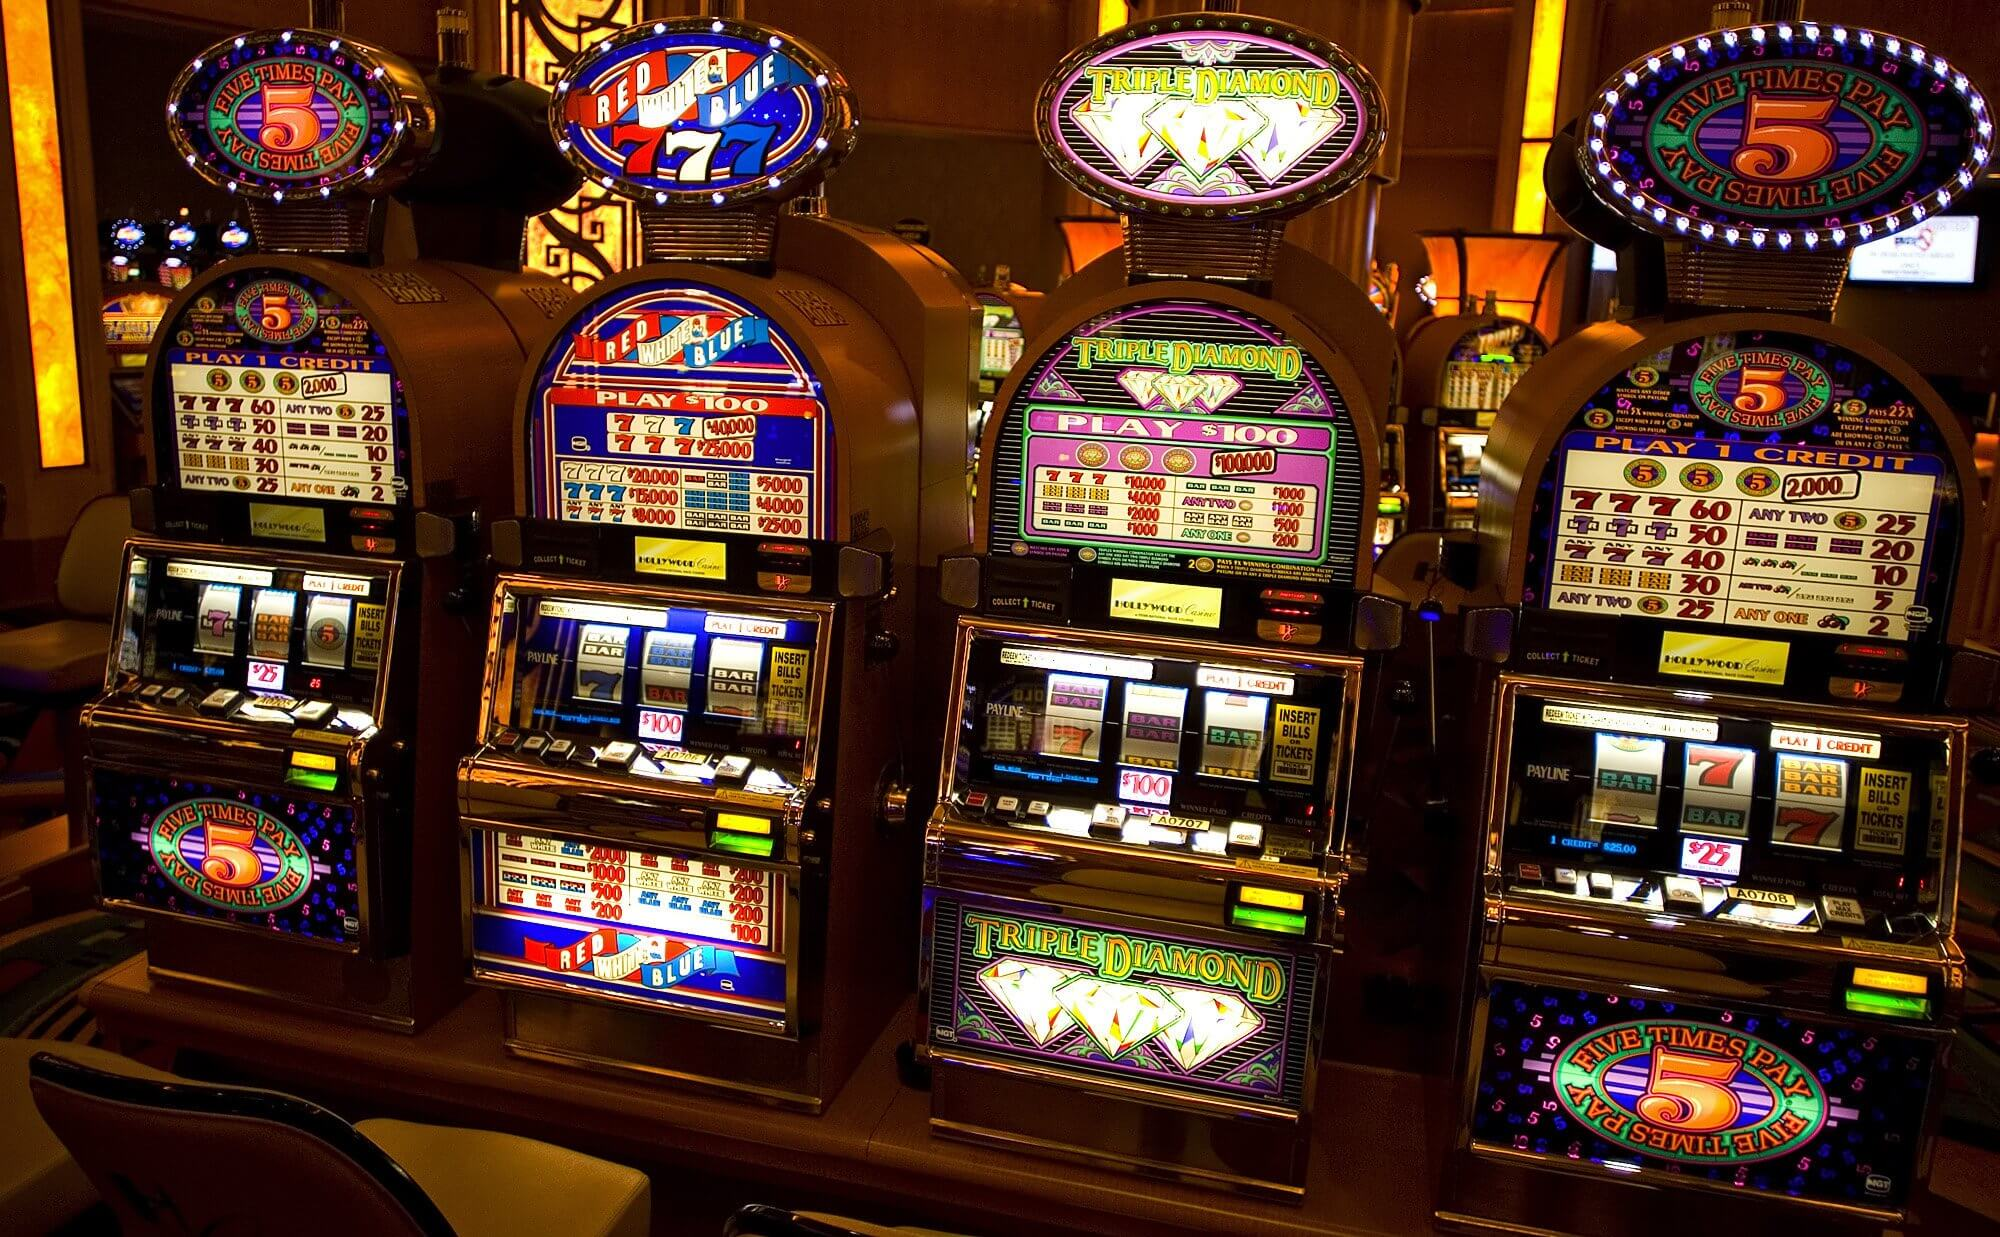 How to Pick a Winning Slot Machine